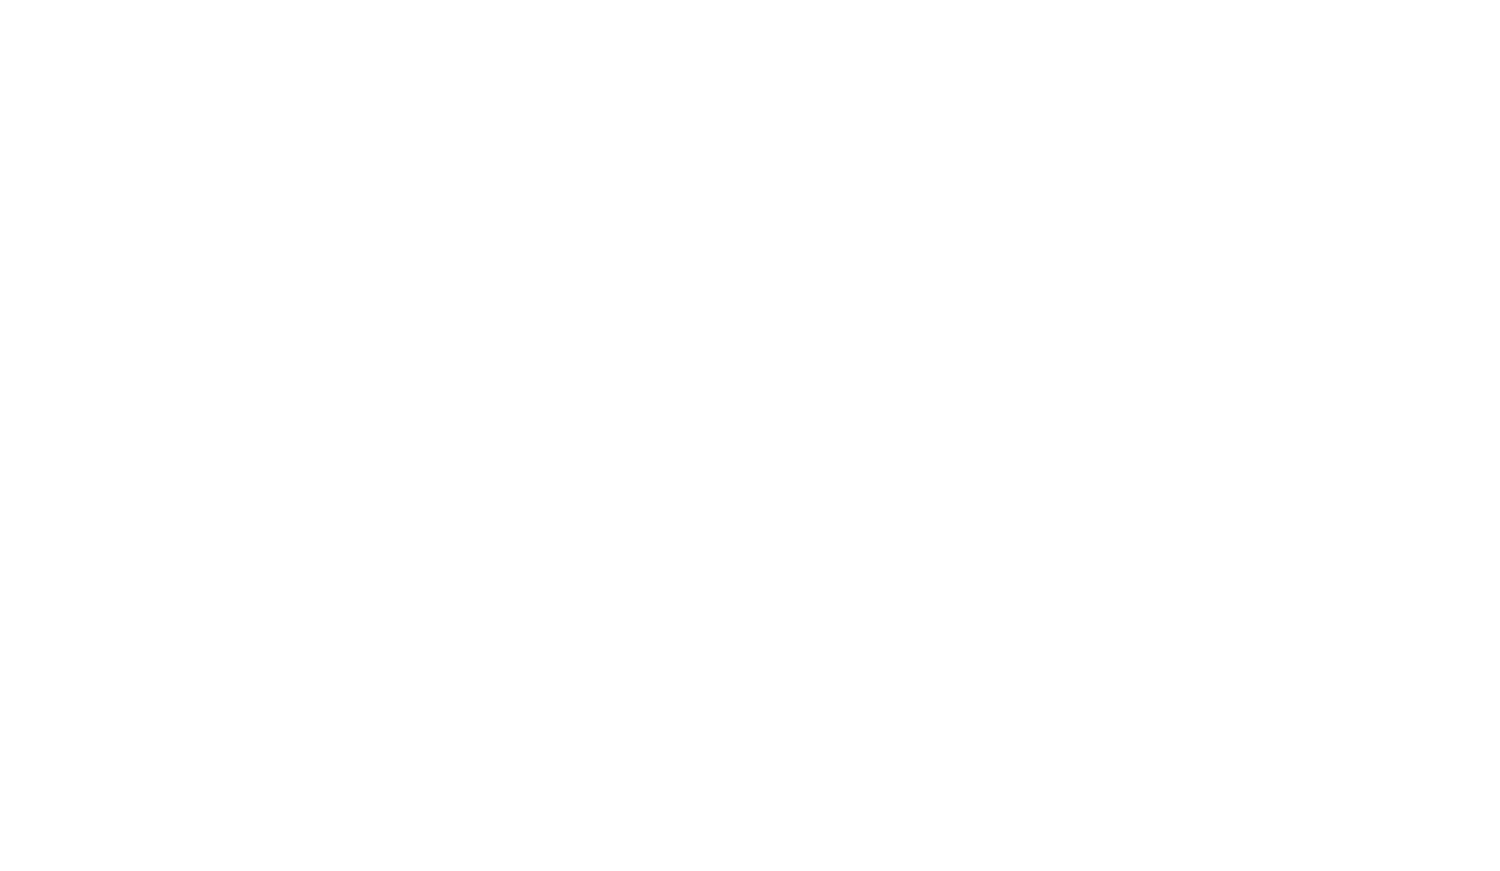 EAZYSEASON | The Official G-Eazy Fan Site